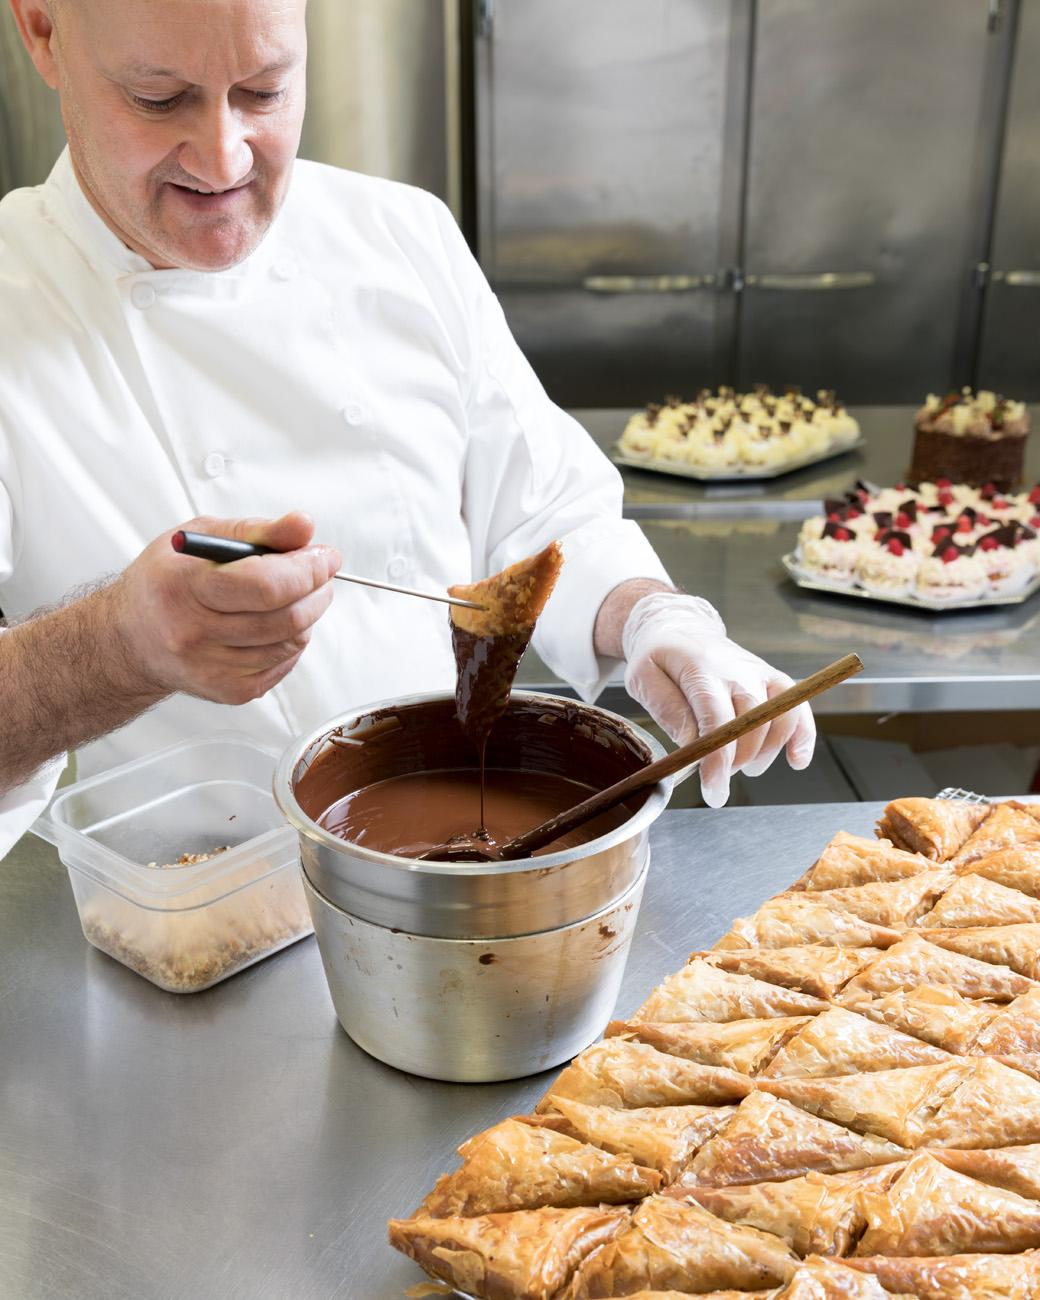 Dark chocolate sauce used for coating classic baklava / Image: Marlene Rounds // Published: 9.5.18